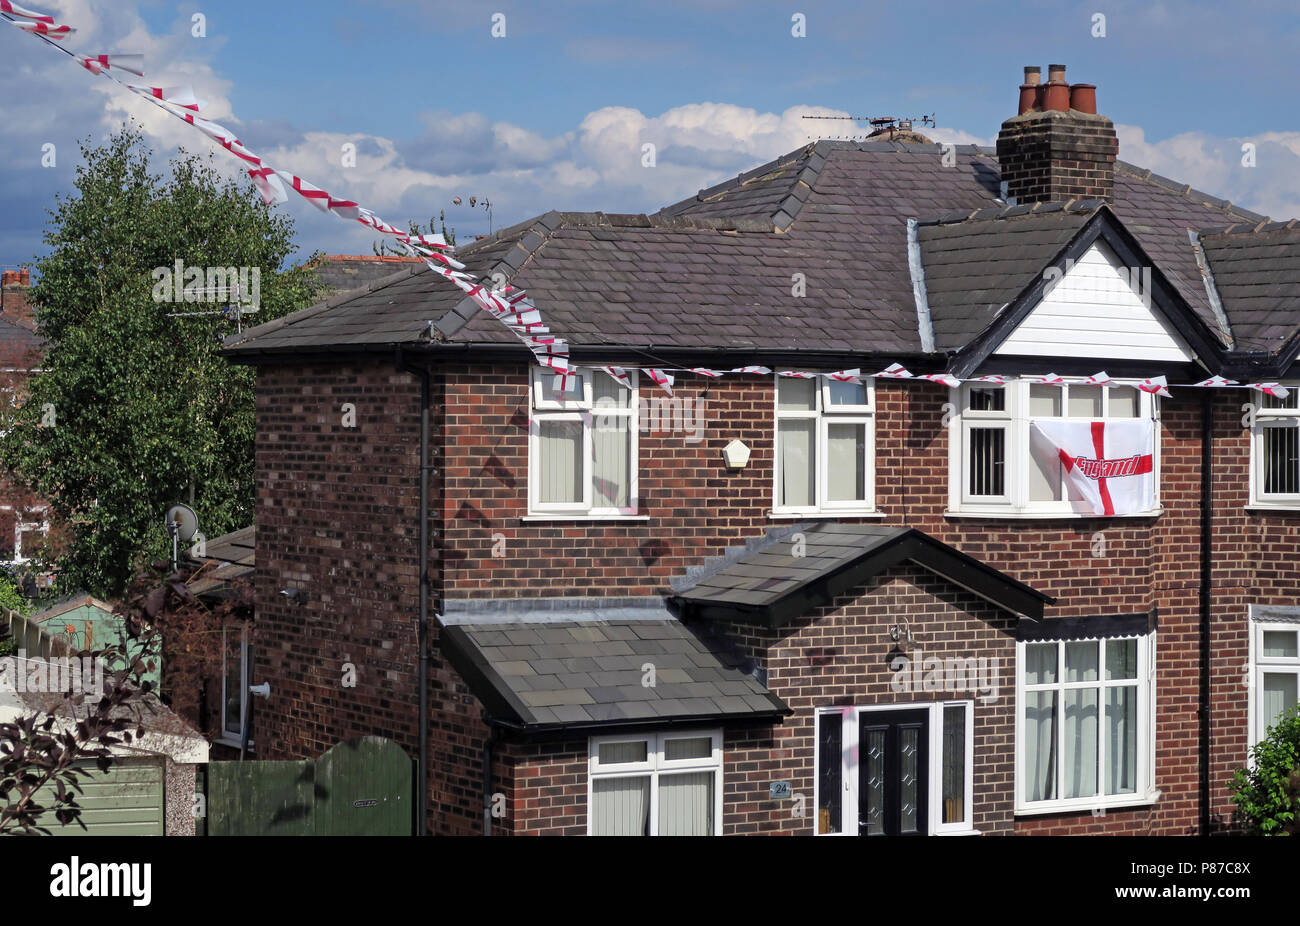 St George cross ed on white flags, flying in a residential street, Grappenhall, Warrington, Cheshire, North West England, UK - Stock Image